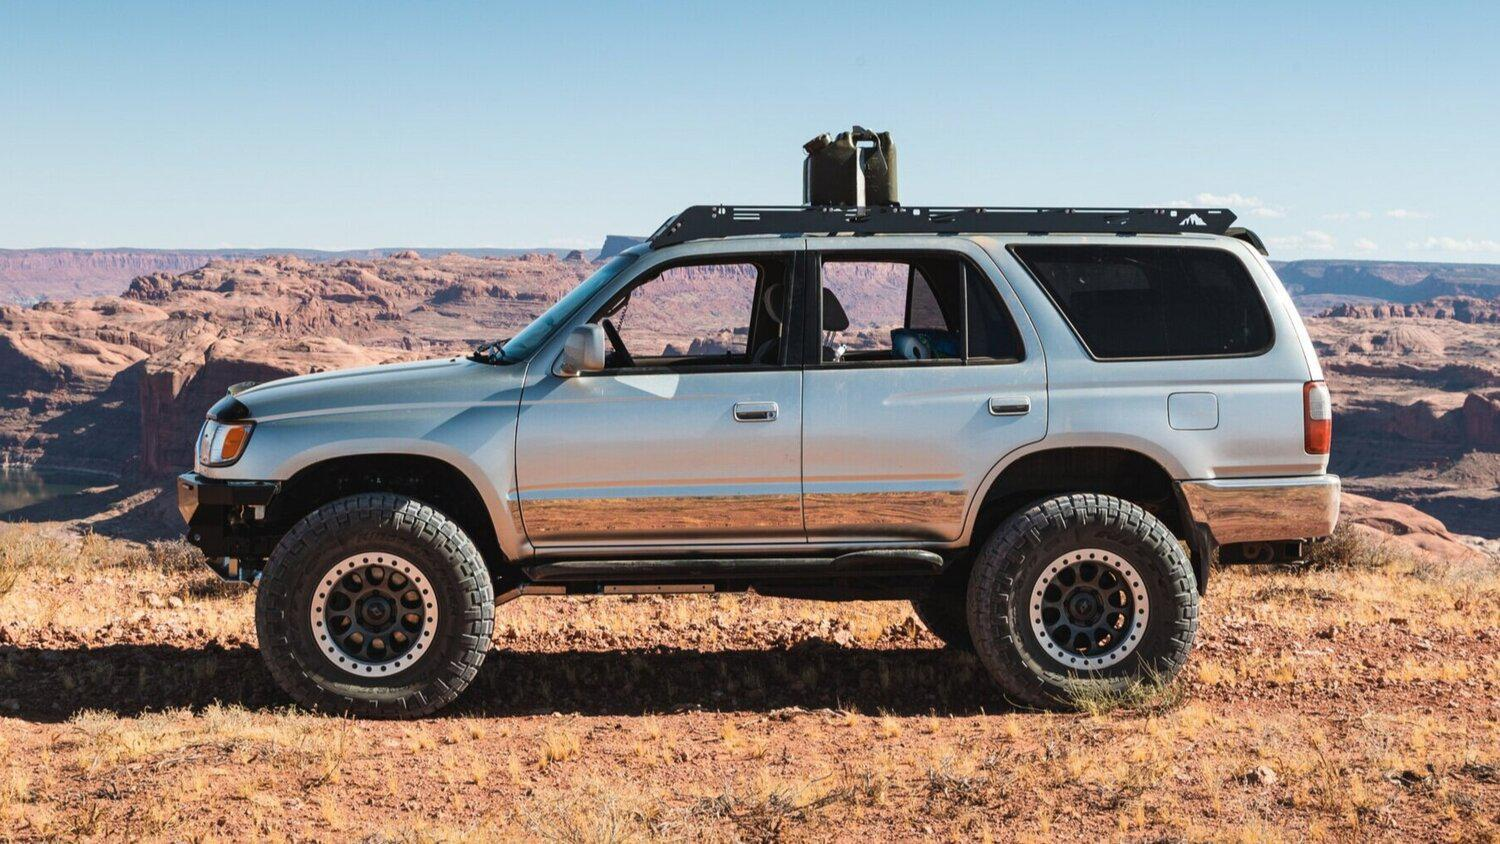 Sherpa Equipment Co The Matterhorn Mkii Roof Rack Toyota 4runner 1 Truck Brigade